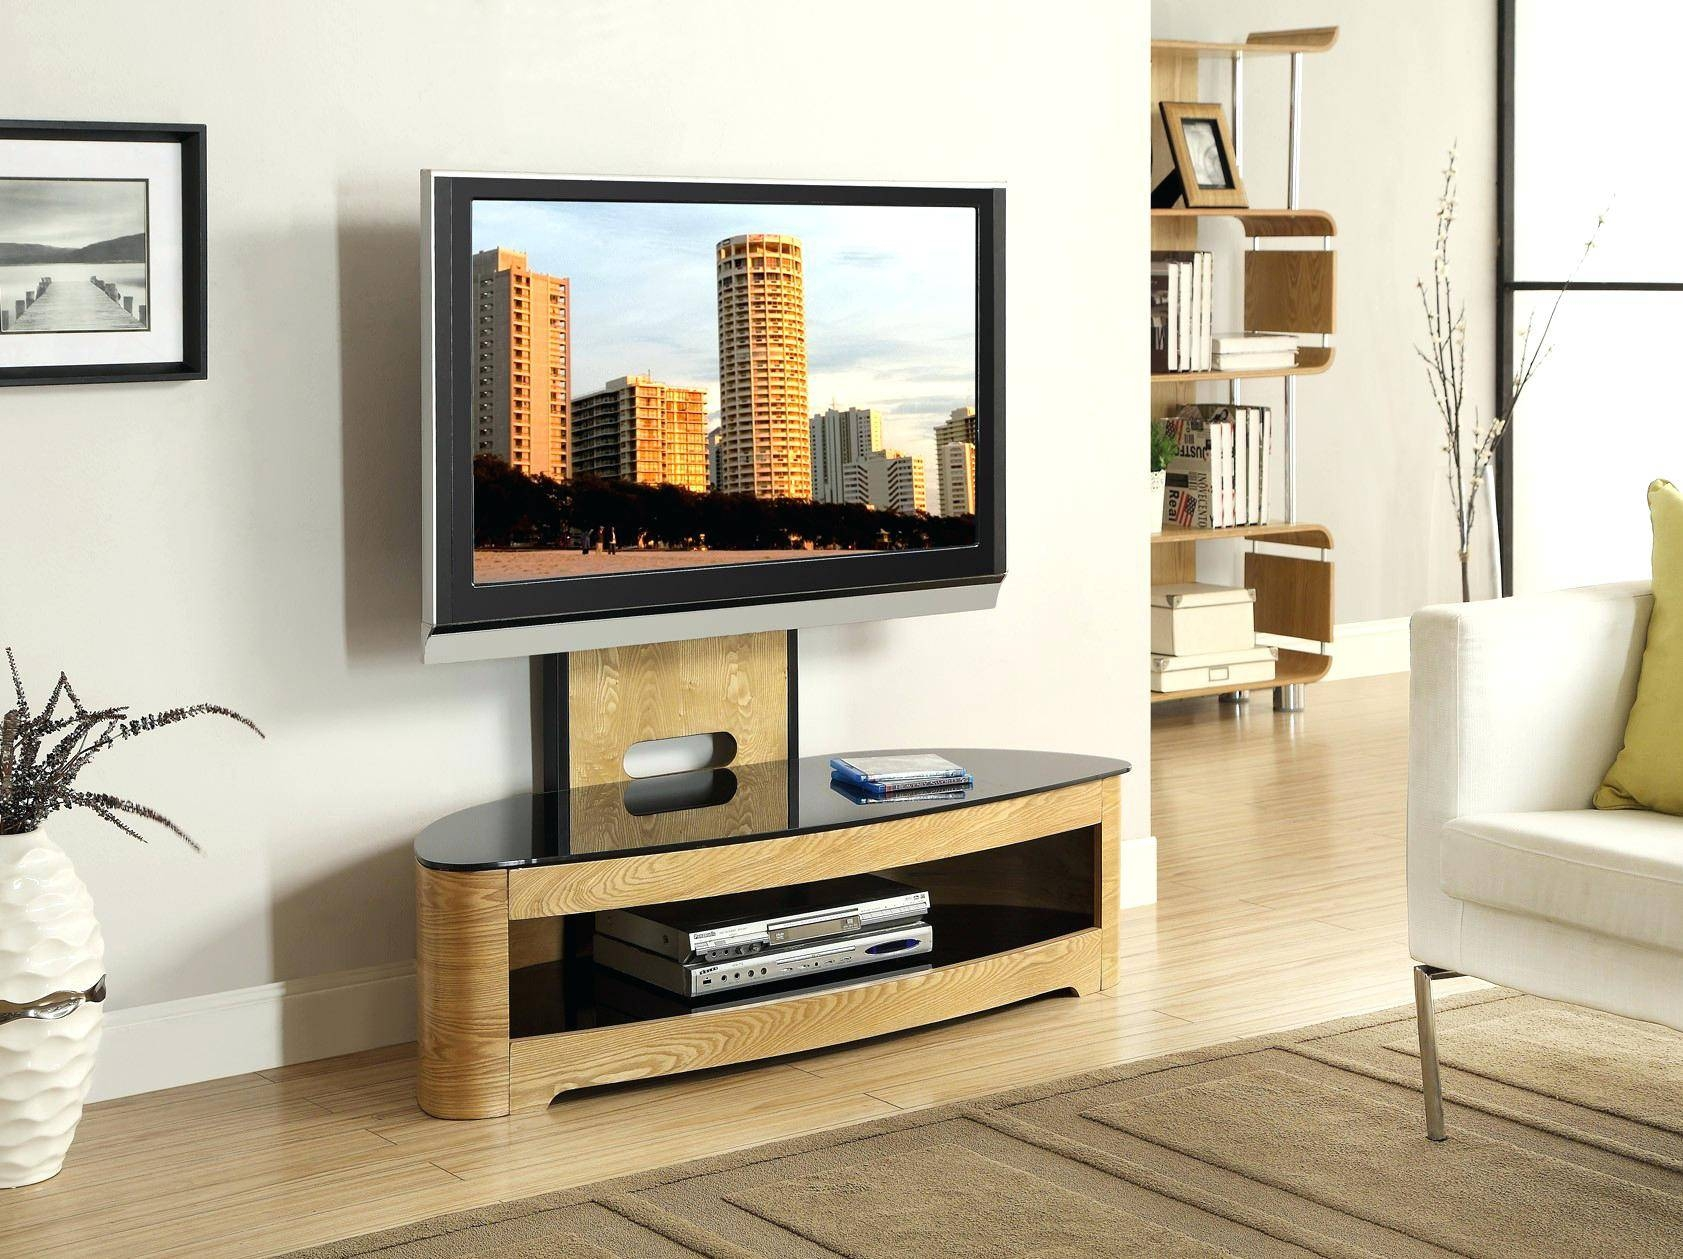 Tv Stand : Tv Stands Tv Stand Oak Oak Tv Stands For Flat Screen In Trendy Tv Stands (View 12 of 15)